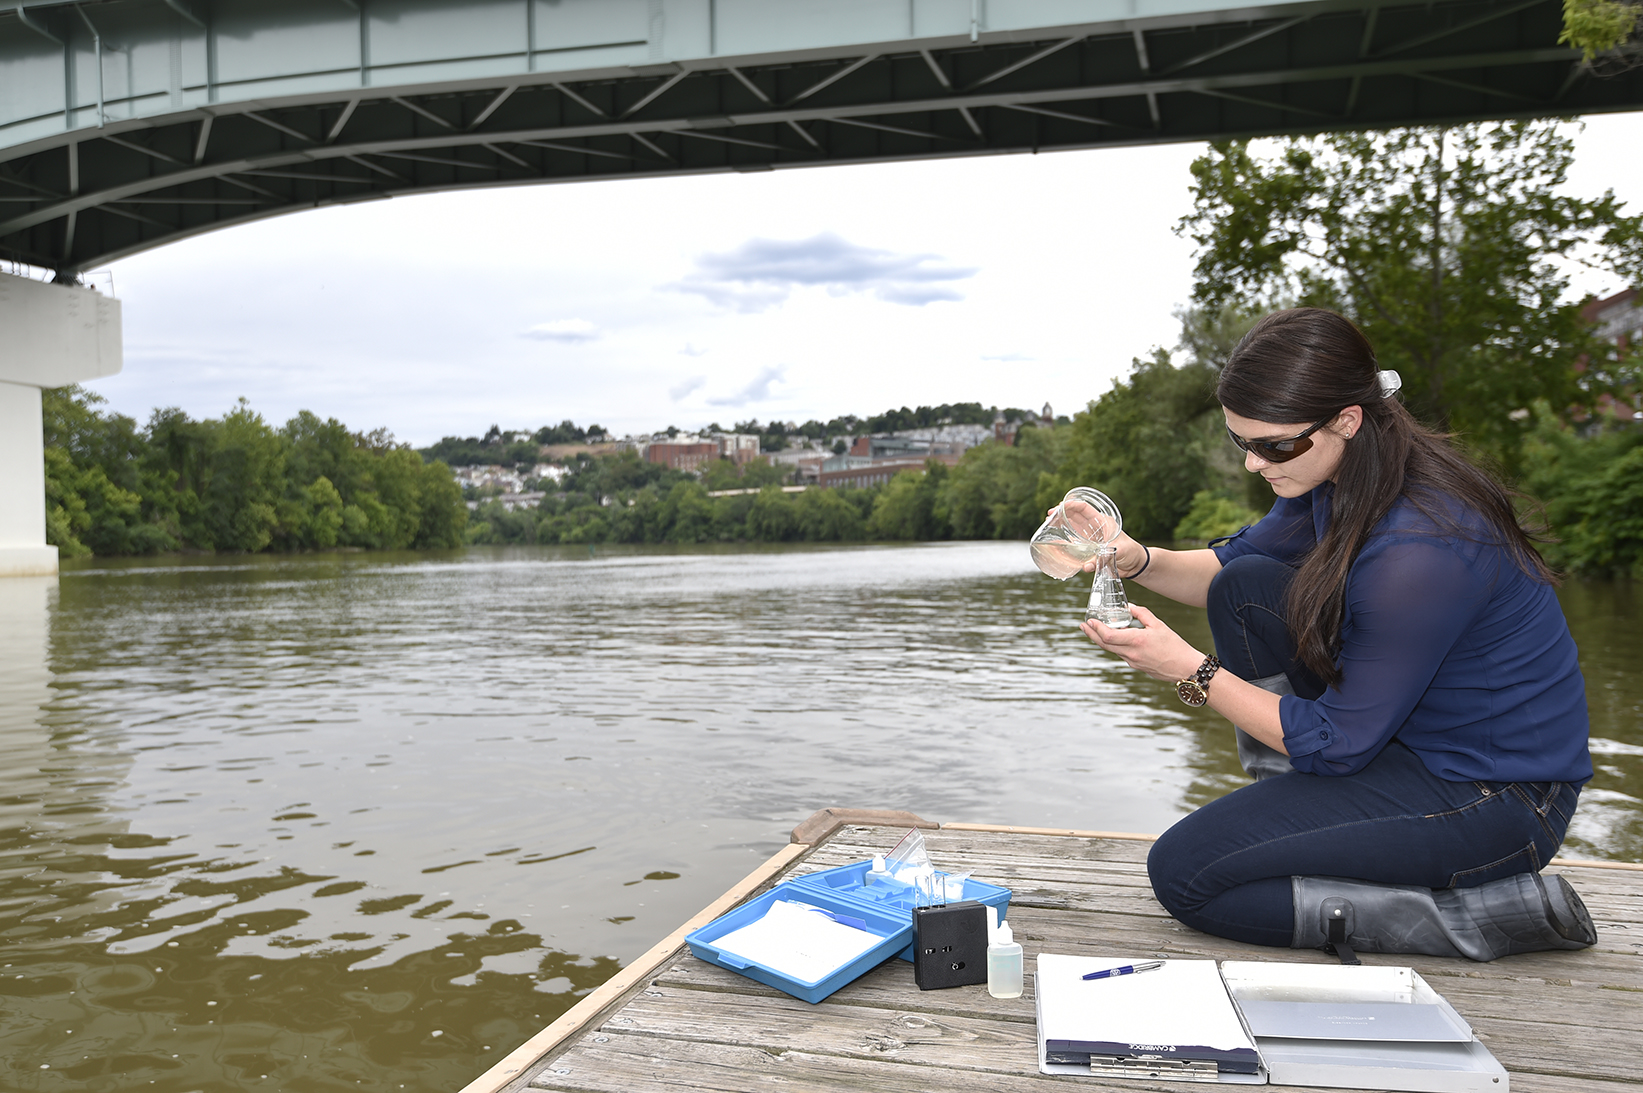 A coalition of West Virginia University researchers is working together to address the state's most pressing water issues through Bridge, a campus-wide science and technology policy, leadership and communications initiative. The impetus for the initiative is to translate the work of WVU researchers to policymakers as part of the University's land-grant mission.